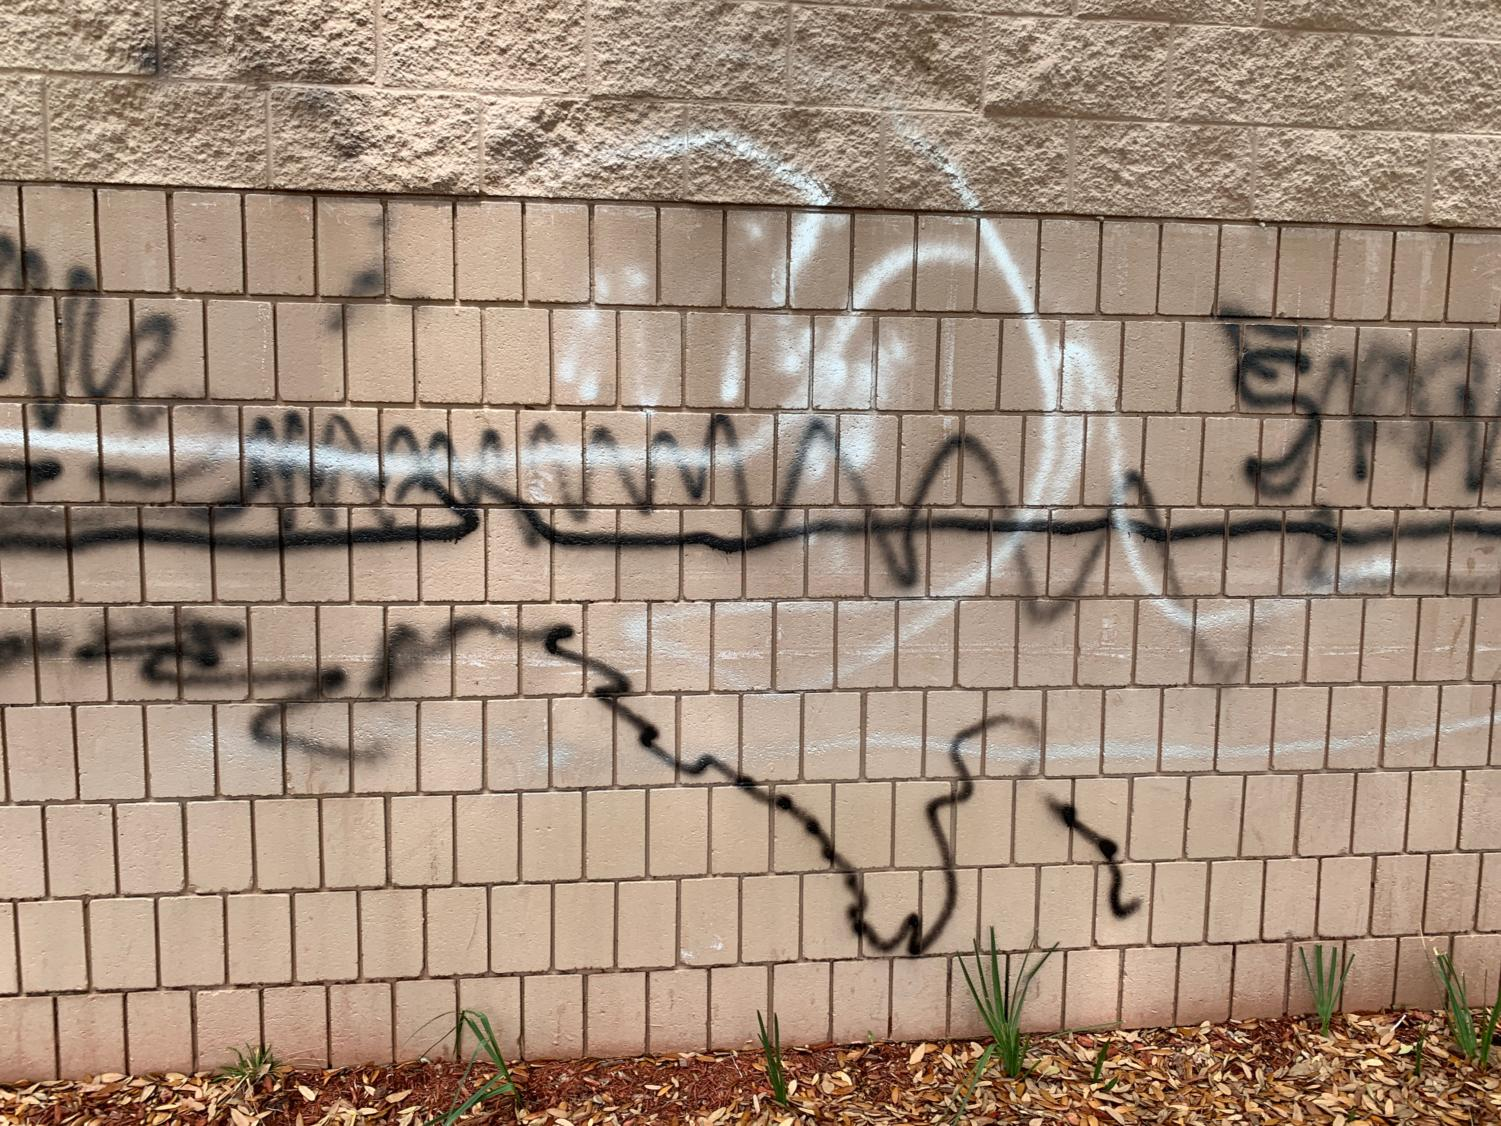 Graffiti covers the side of the Media Center.